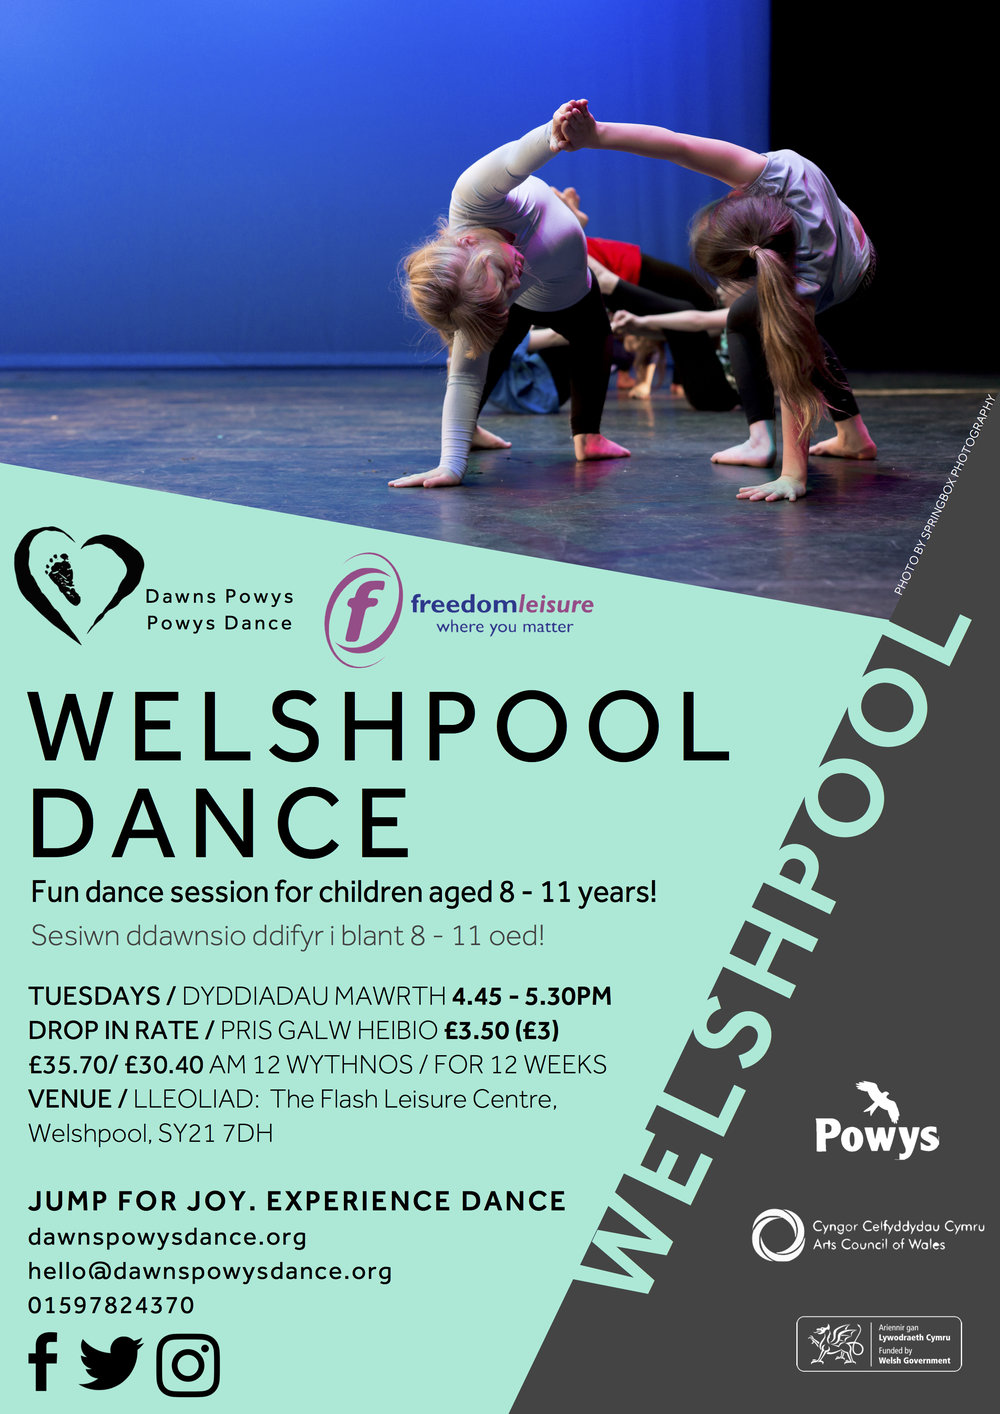 WELSHPOOL DANCE 2019 8 - 11 years.jpg